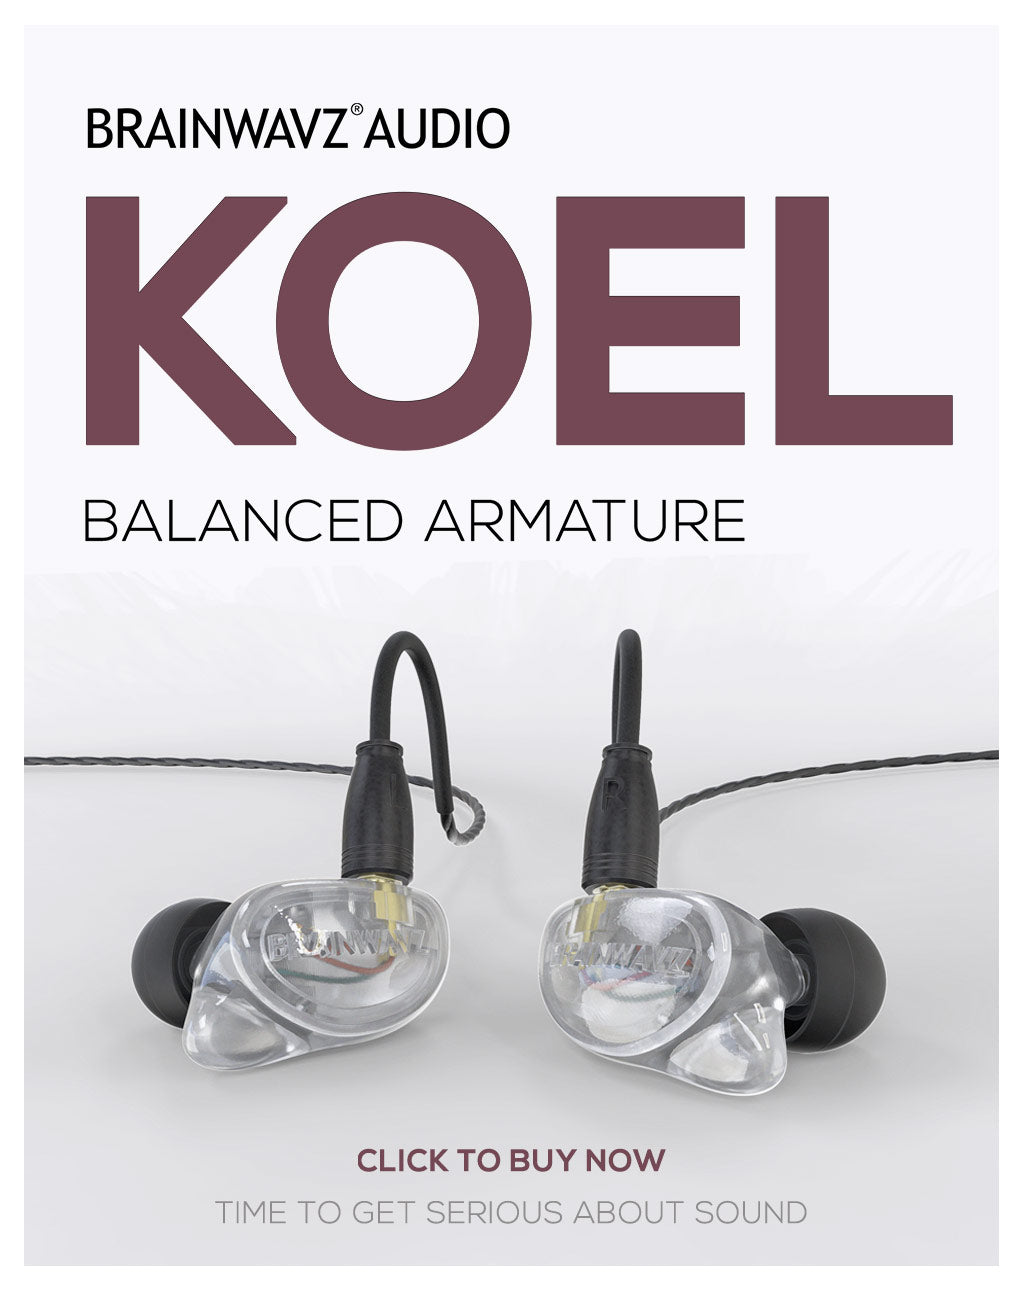 Brainwavz Koel earphones